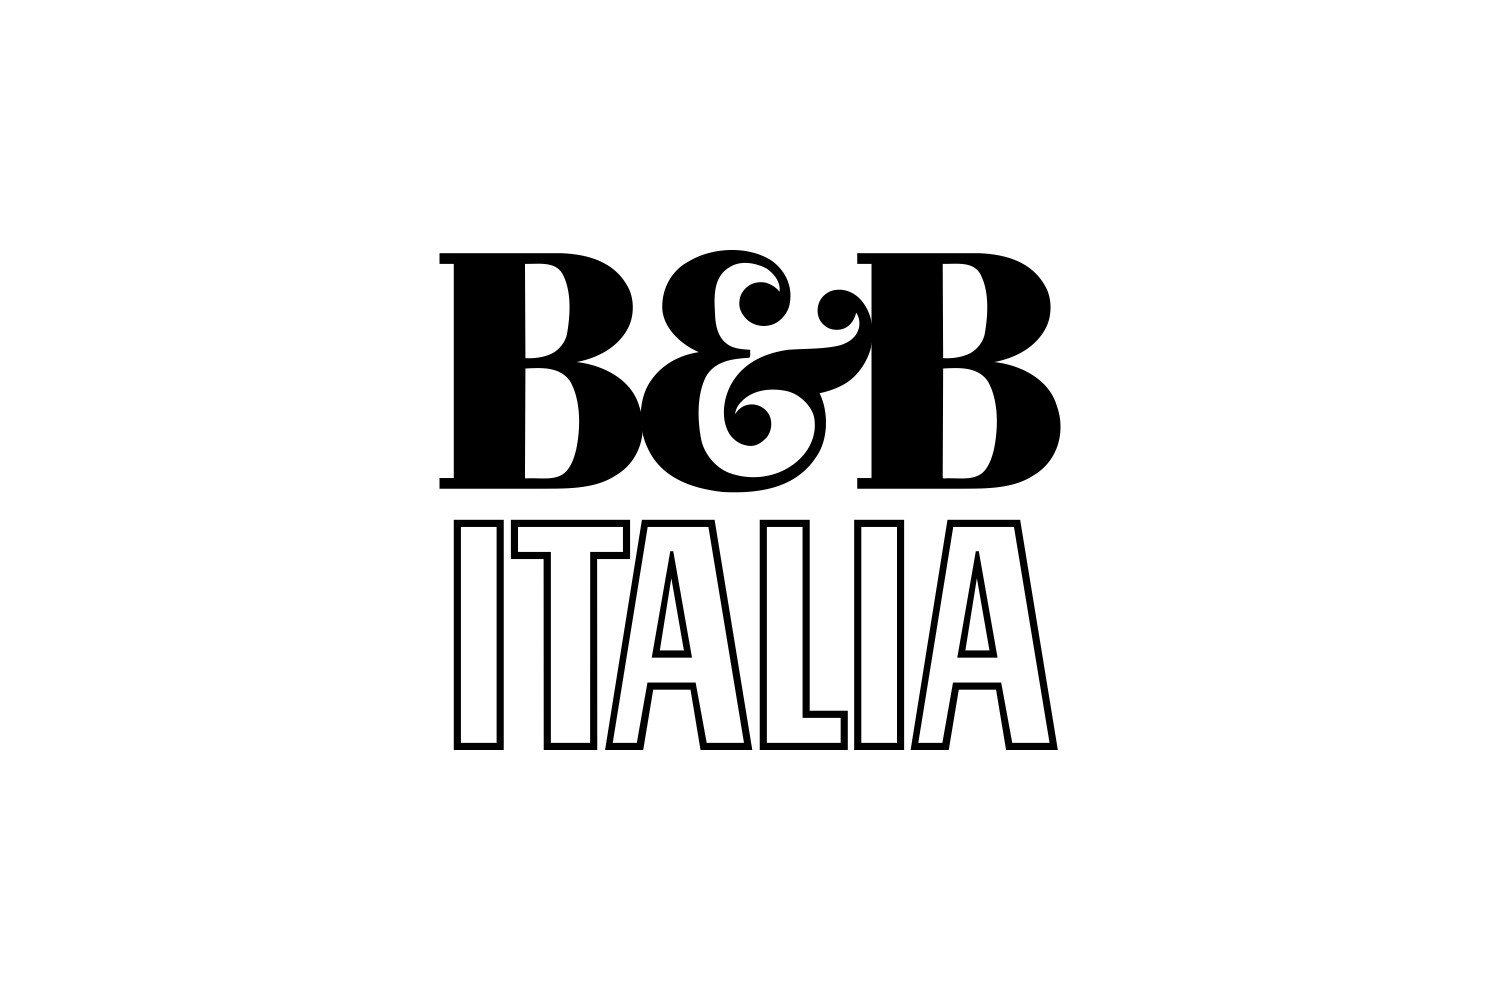 Our manufacturing brands for B and b italia